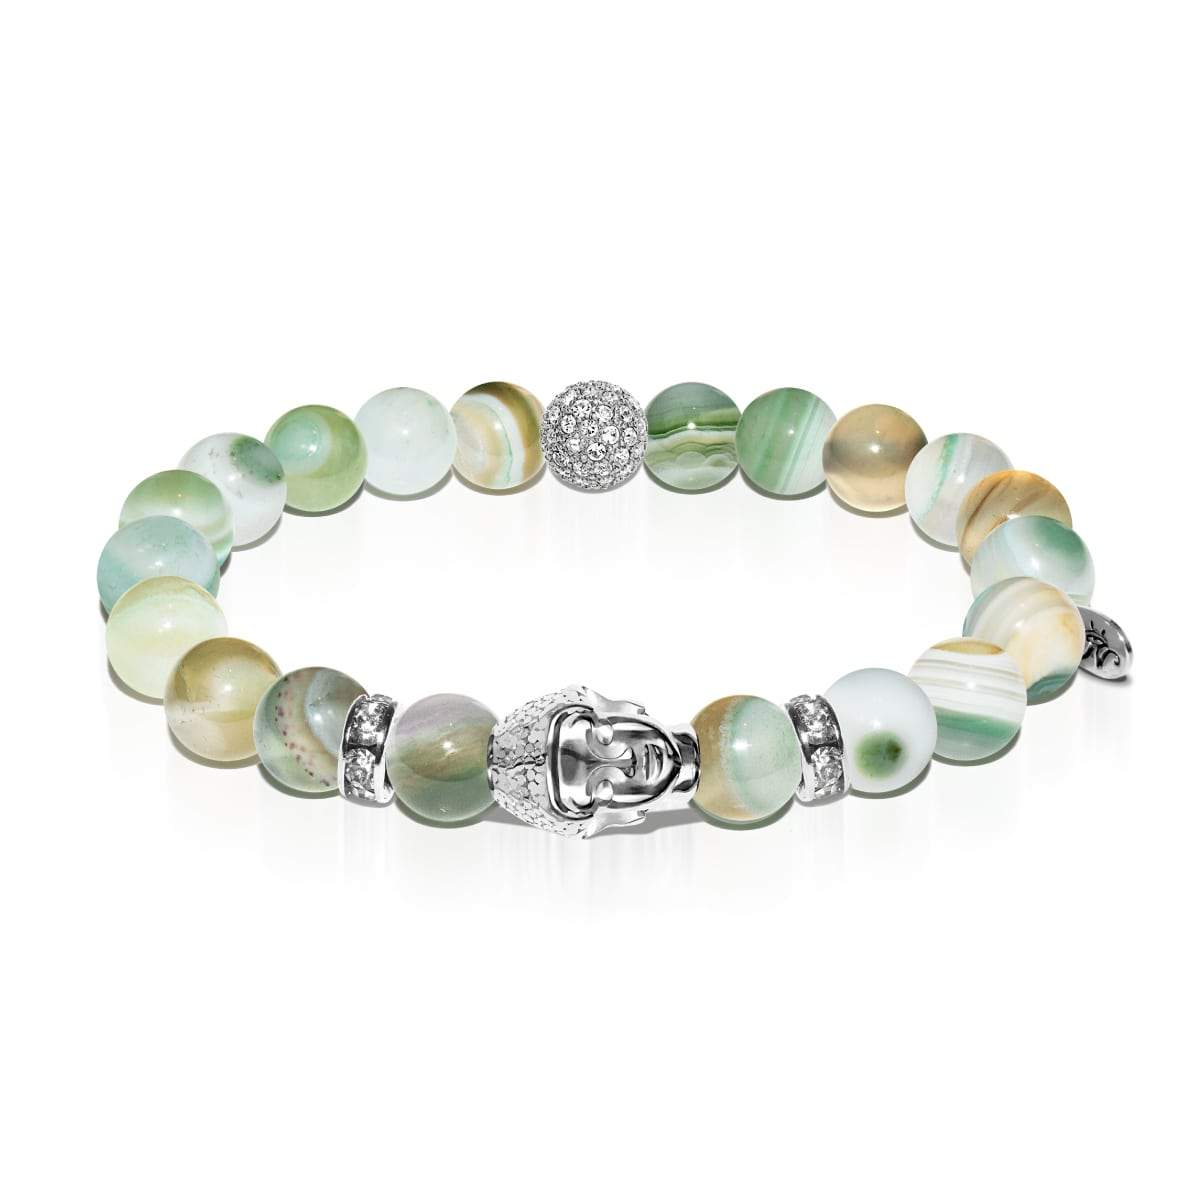 Ethereal | White Gold Buddha | Light Green Striped Agate Bracelet